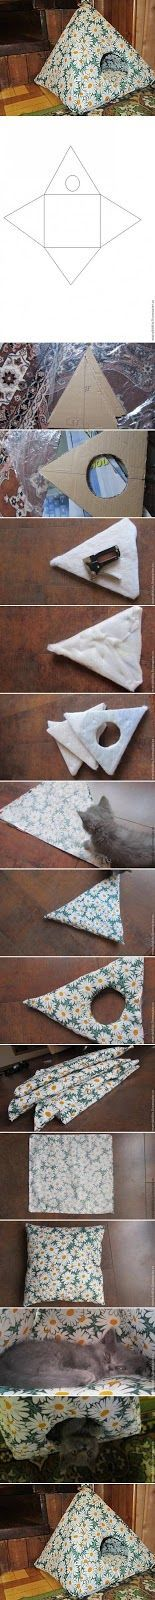 DIY Cat Tent DIY House for Cat or small dog or make it small enough for any of your pet rodents. Love rats and all!DIY House for Cat or small dog or make it small enough for any of your pet rodents. Love rats and all! Small Cat, Small Dogs, Small Animals, Small Small, Animals Dog, Diy Cat Tent, Diy Tent, Cat Teepee, Teepee Bed